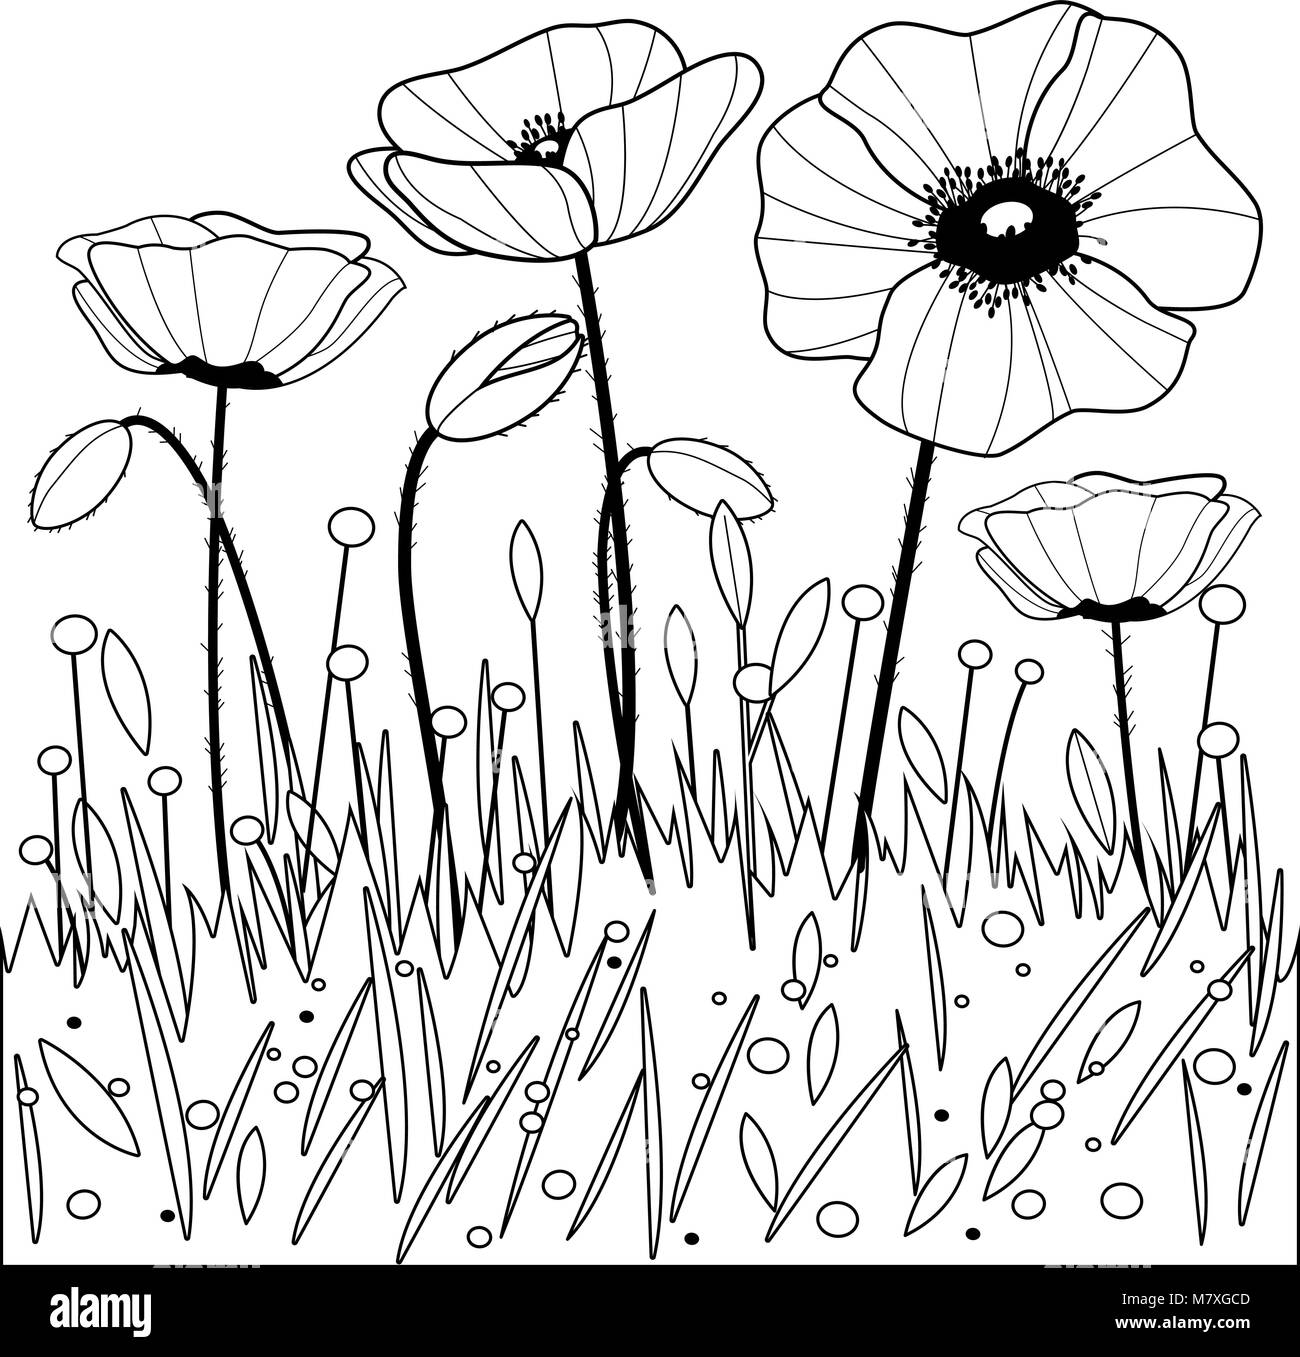 Black And White Poppies Stock Photos Black And White Poppies Stock